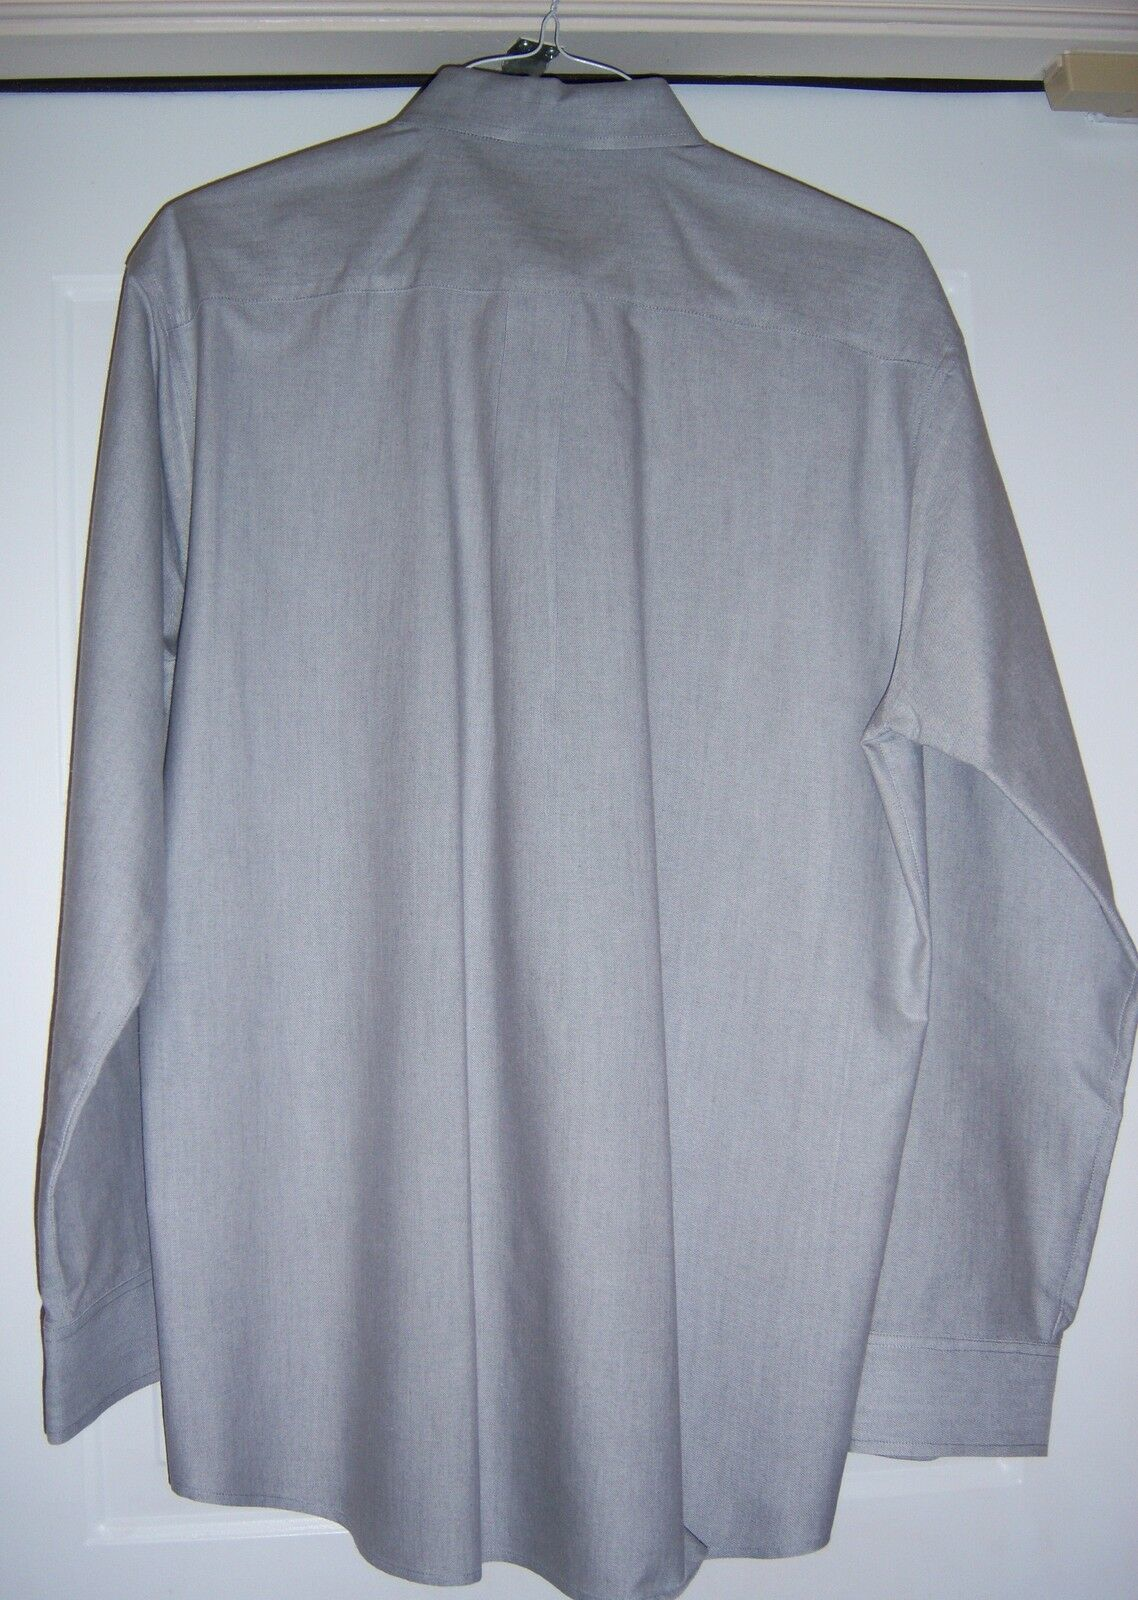 MARKS AND SPENCER Oxford Style Shirt Cotton blend L/S Gray Men's M image 4